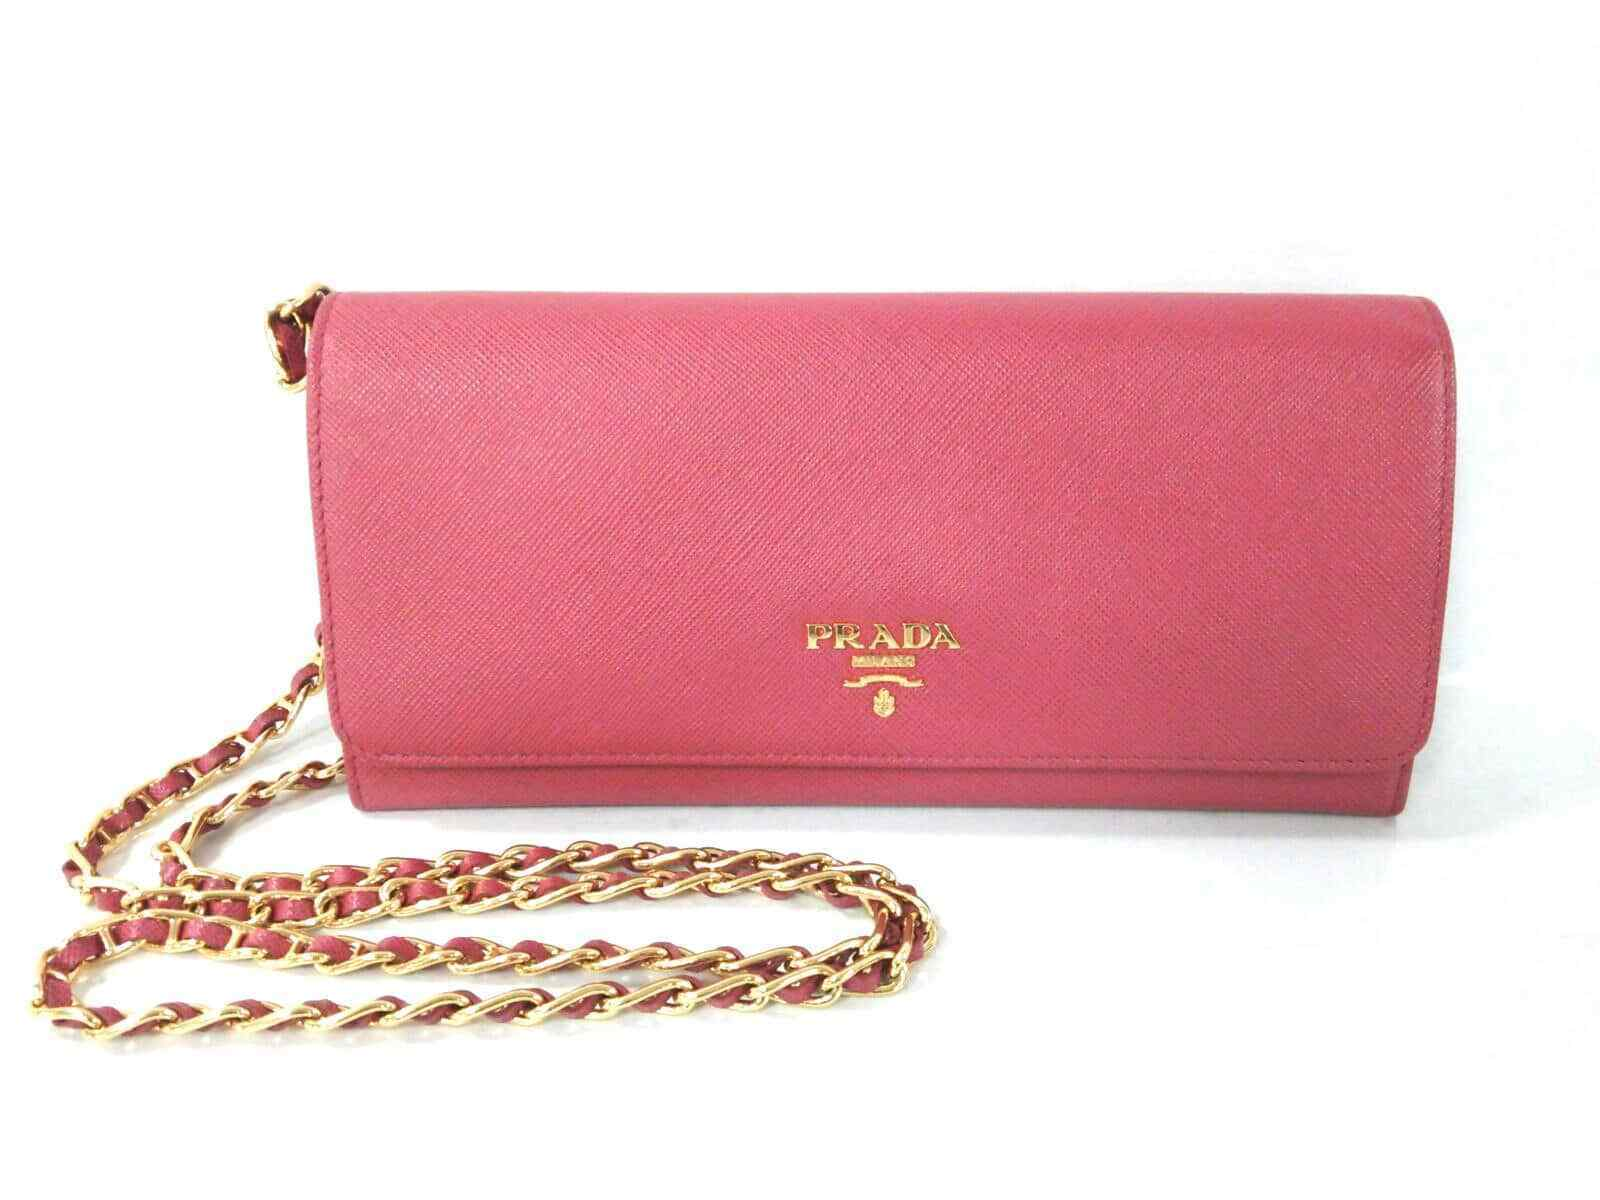 Prada Pink Saffiano Leather Chain Wallet WOC GHW